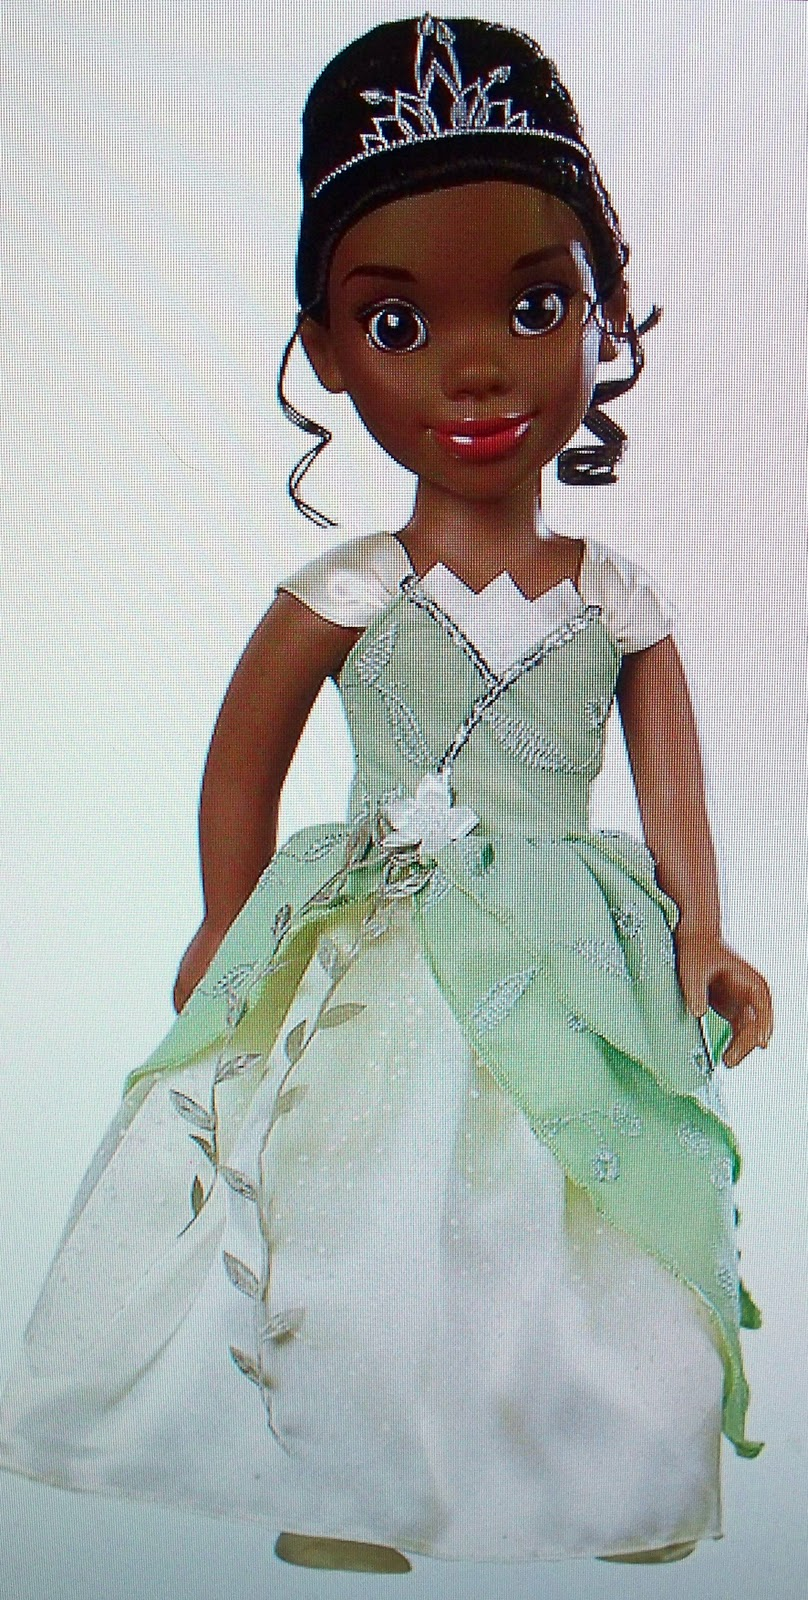 Toddler Doll Toys R Us Black Doll Collecting Can 39;t Get Enough Princess Tiana Dolls